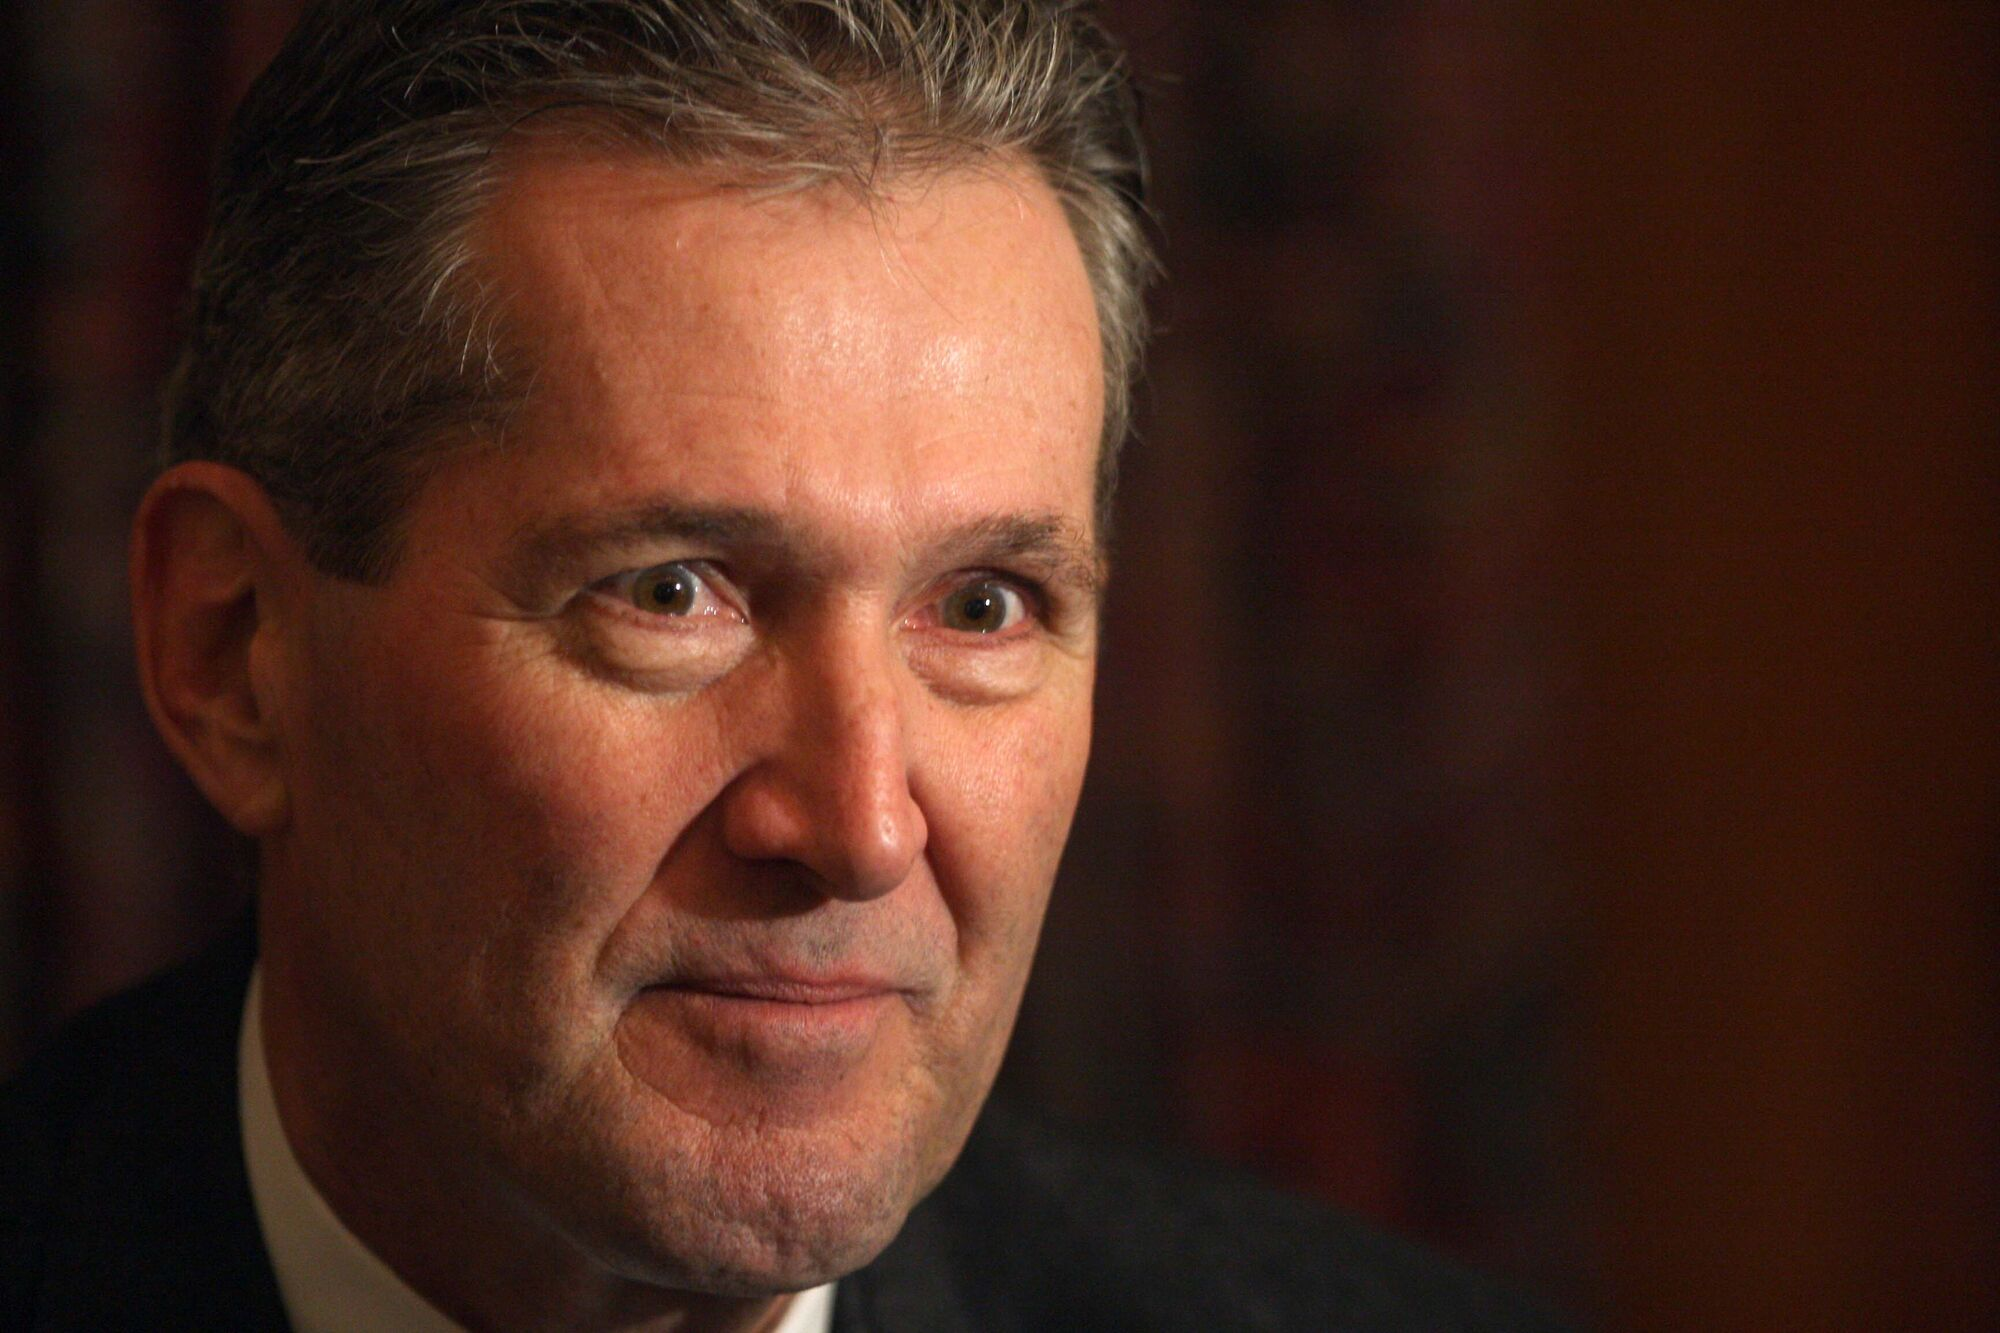 Progressive Conservative Leader Brian Pallister, shown here during an interview at the Manitoba Legislature at the end of 2014.